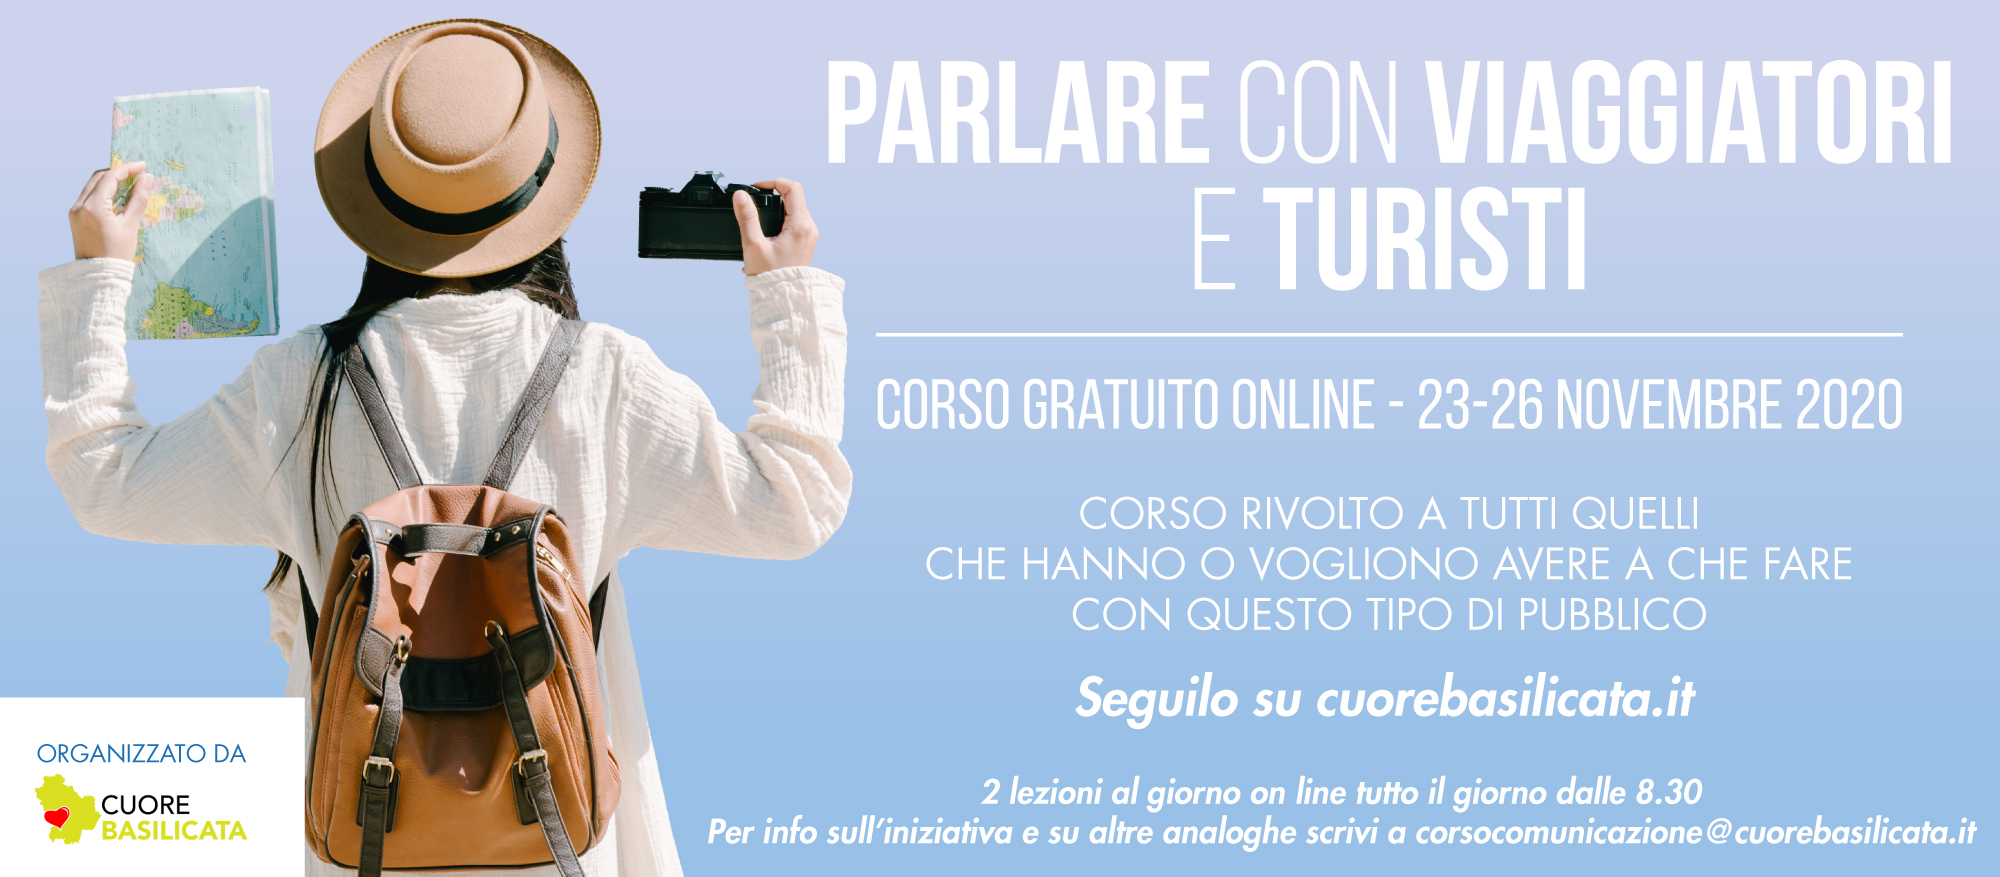 https://www.cuorebasilicata.it/wp-content/uploads/2020/11/Banner_Parlare-1.jpg